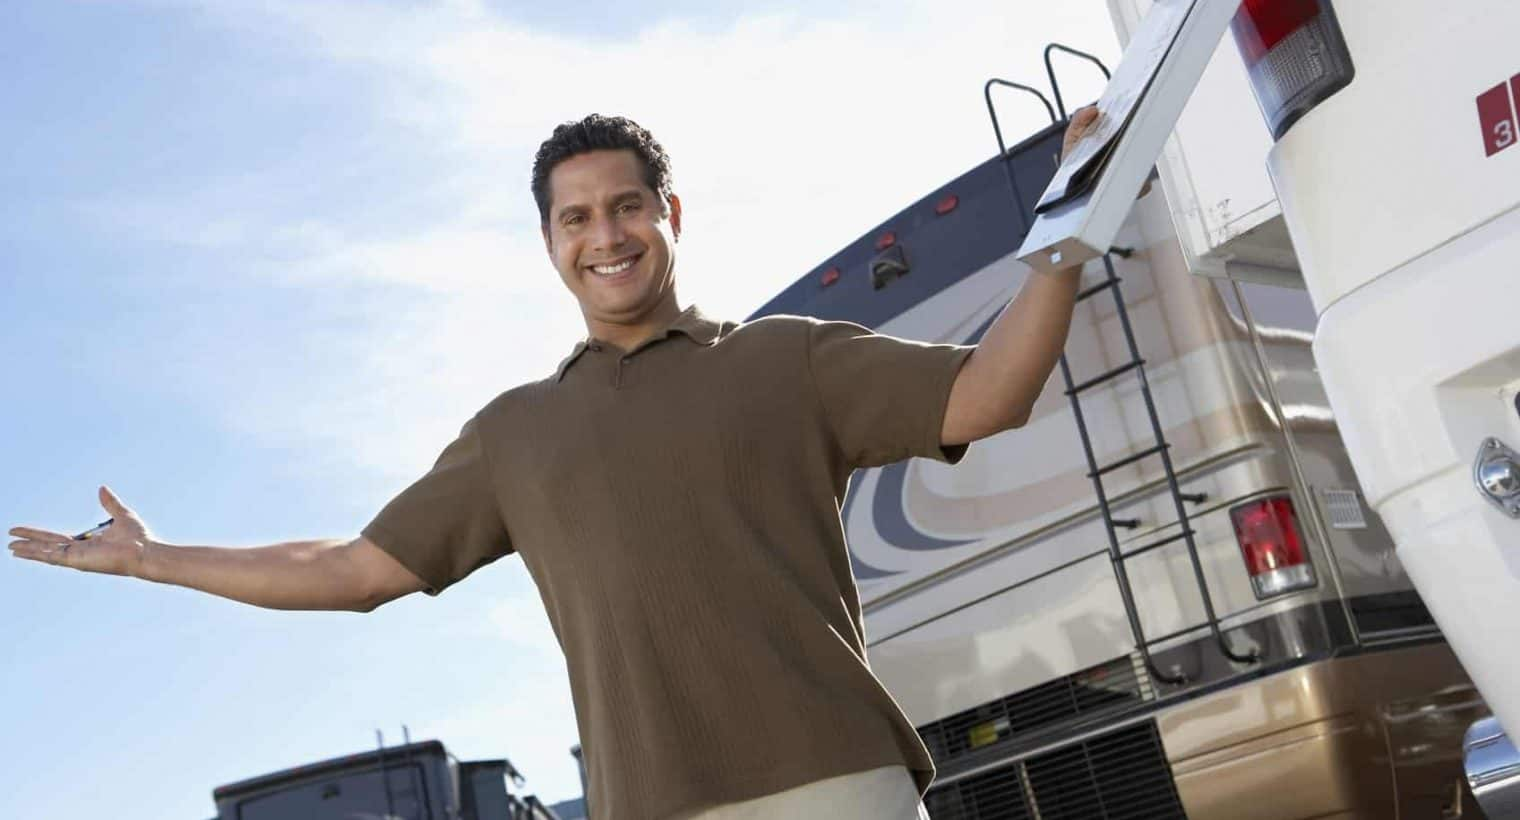 consigning your rv